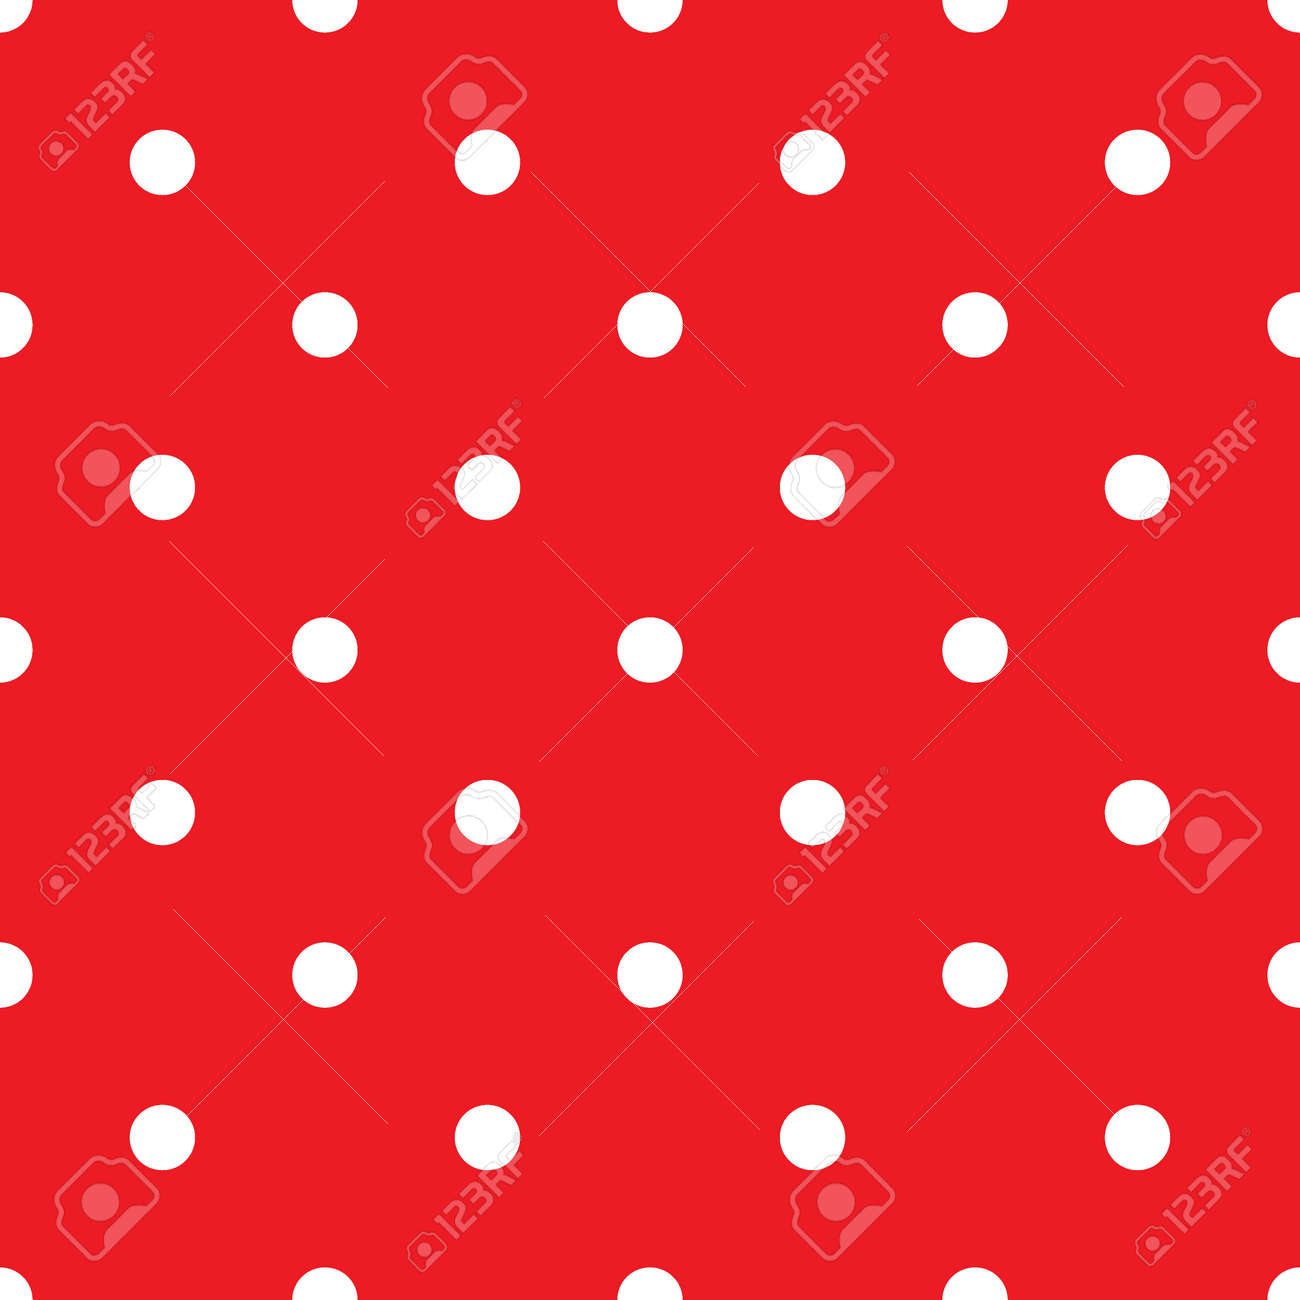 small polka dot seamless pattern abstract fashion red and white